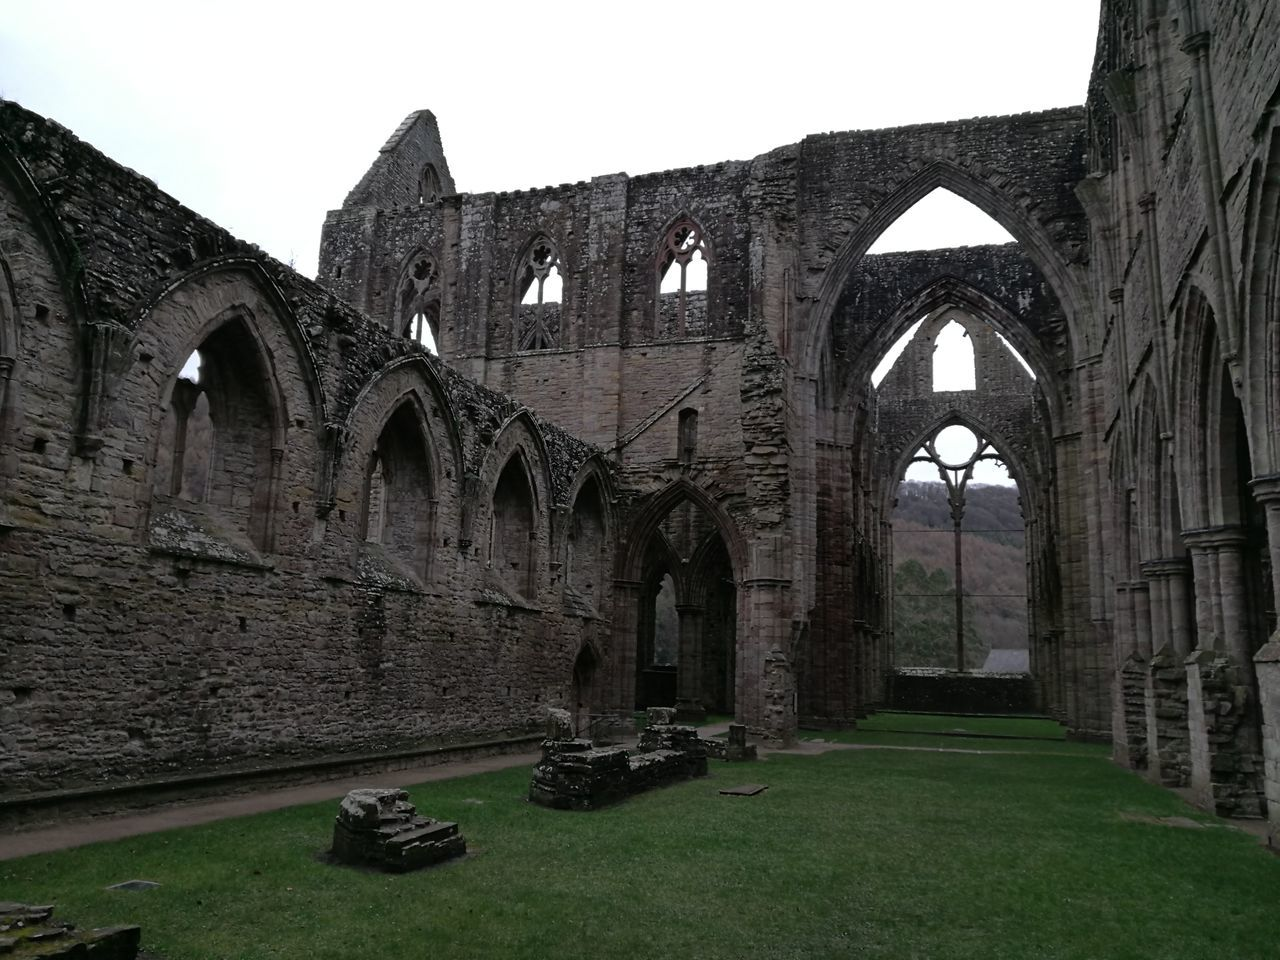 Built Structure No People History Architecture Decay And Dereliction Beauty Of Decay Ancient Old Ruin Abbey Tinternabbey Architecture Ancient Civilization Arch Architectural Column